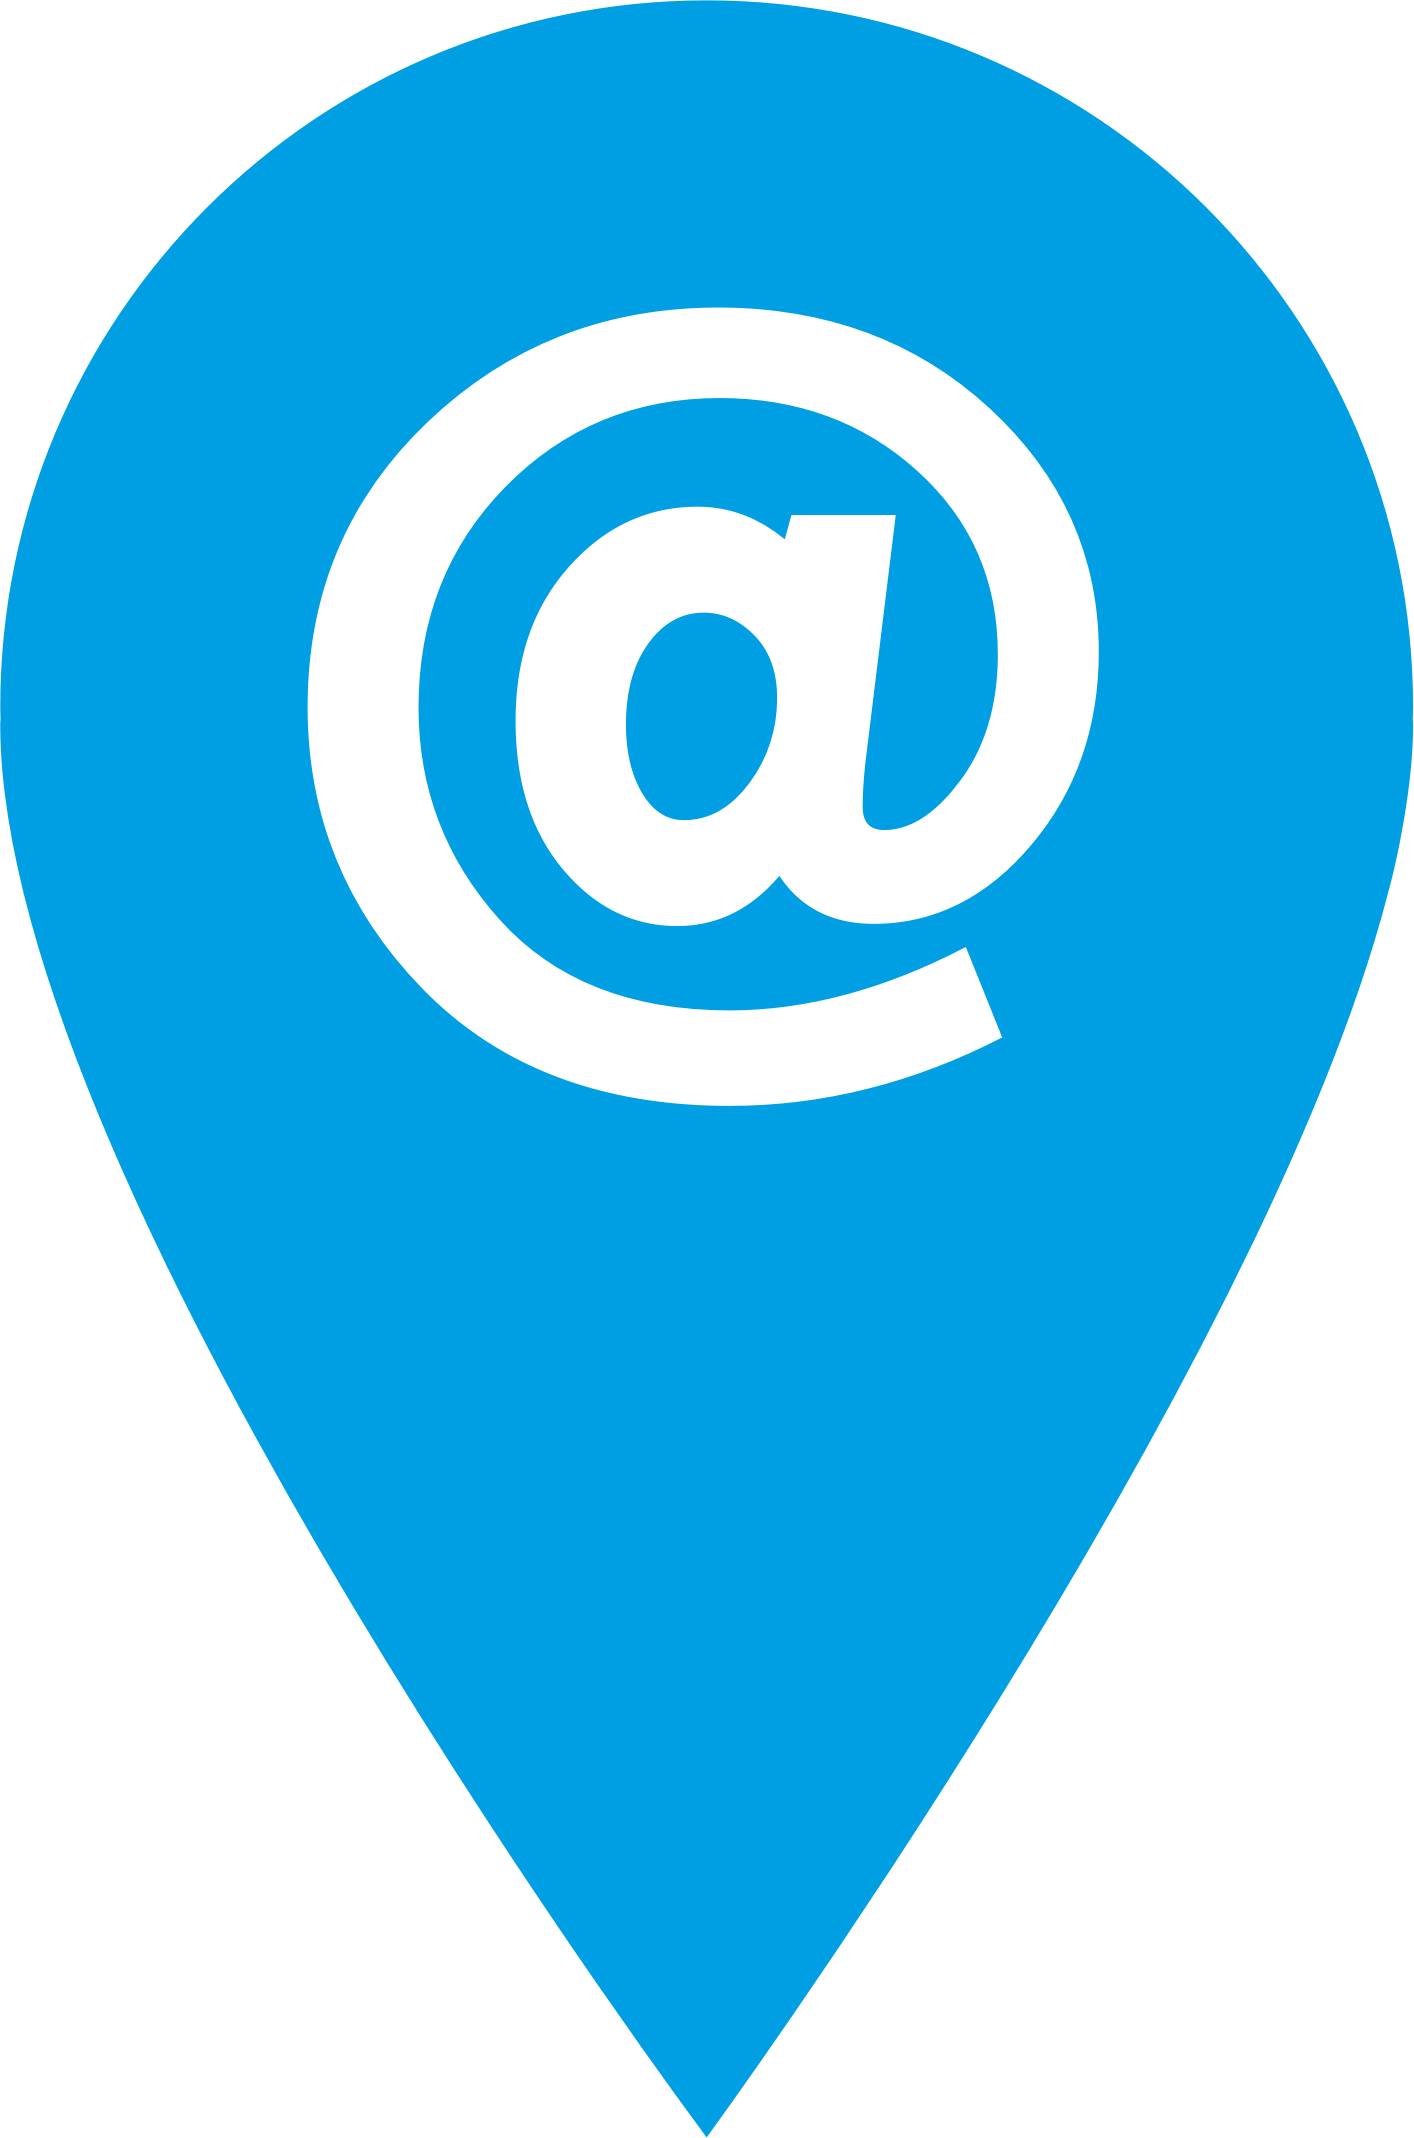 Location clipart clipart blue. Email icon big image